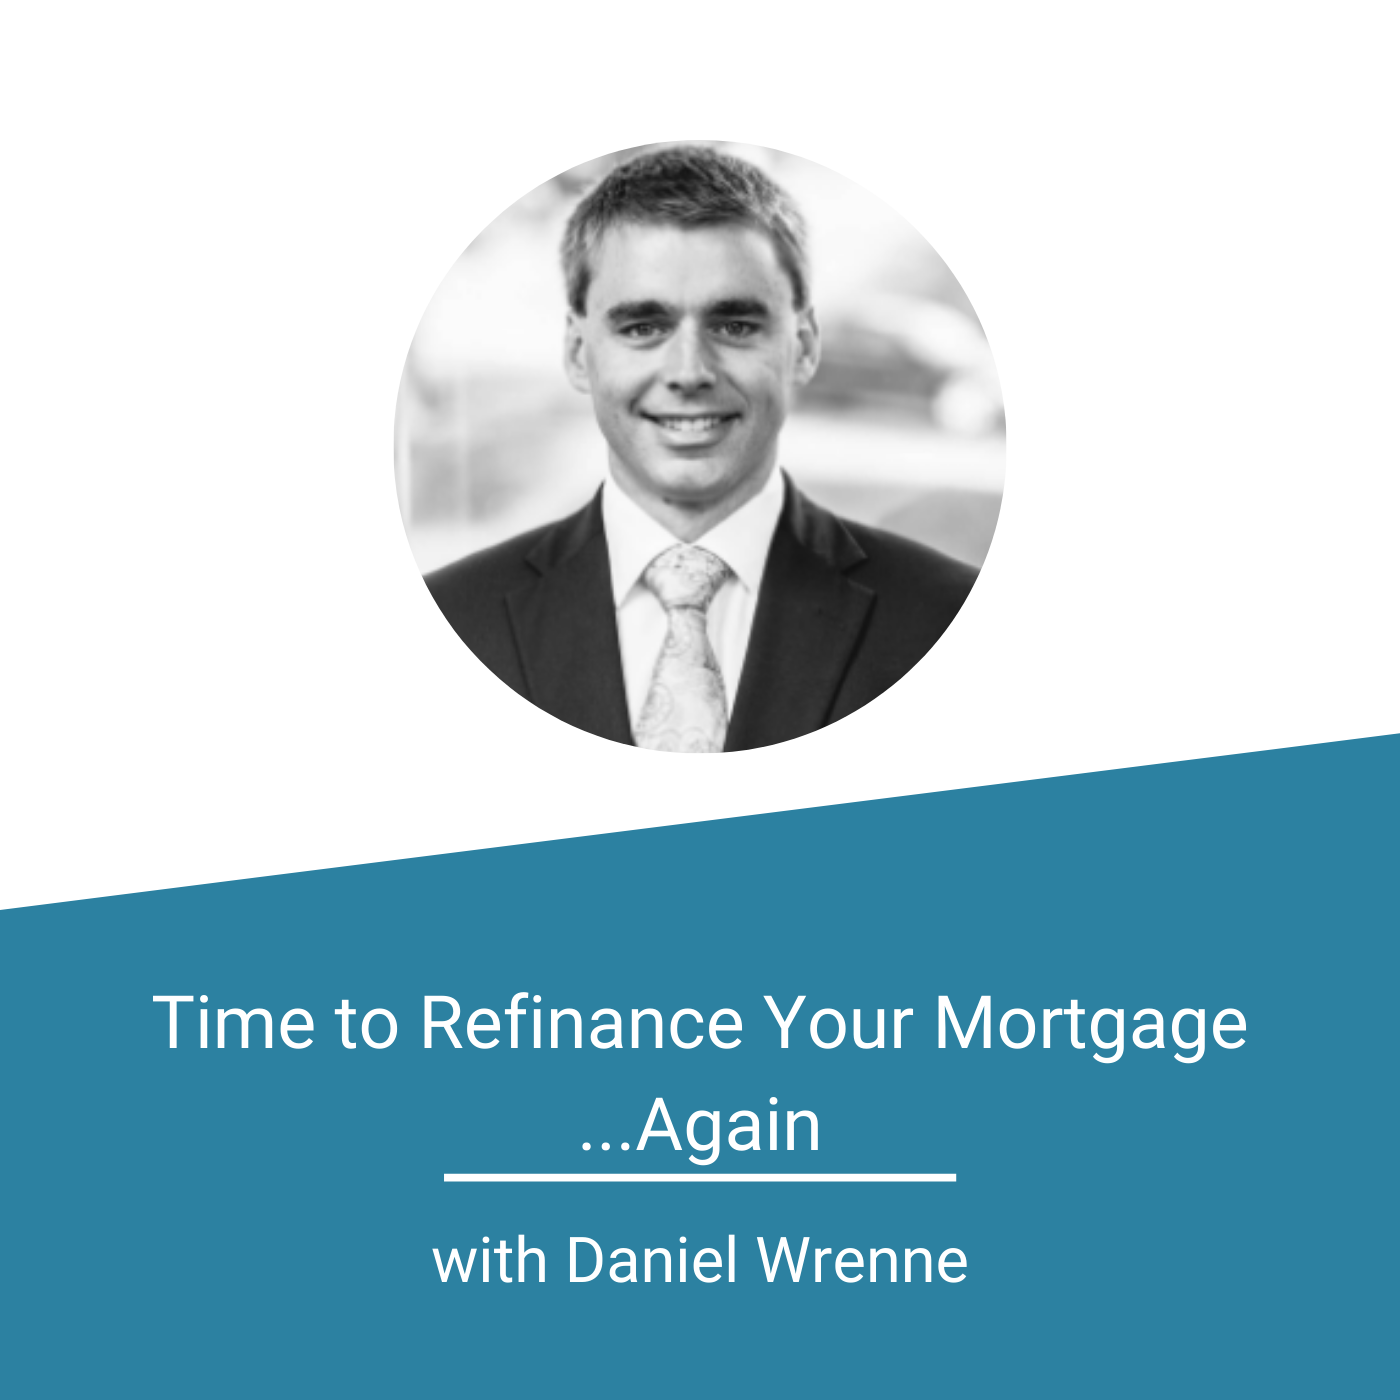 Finance For Physicians - Time to Refinance Your Mortgage Again